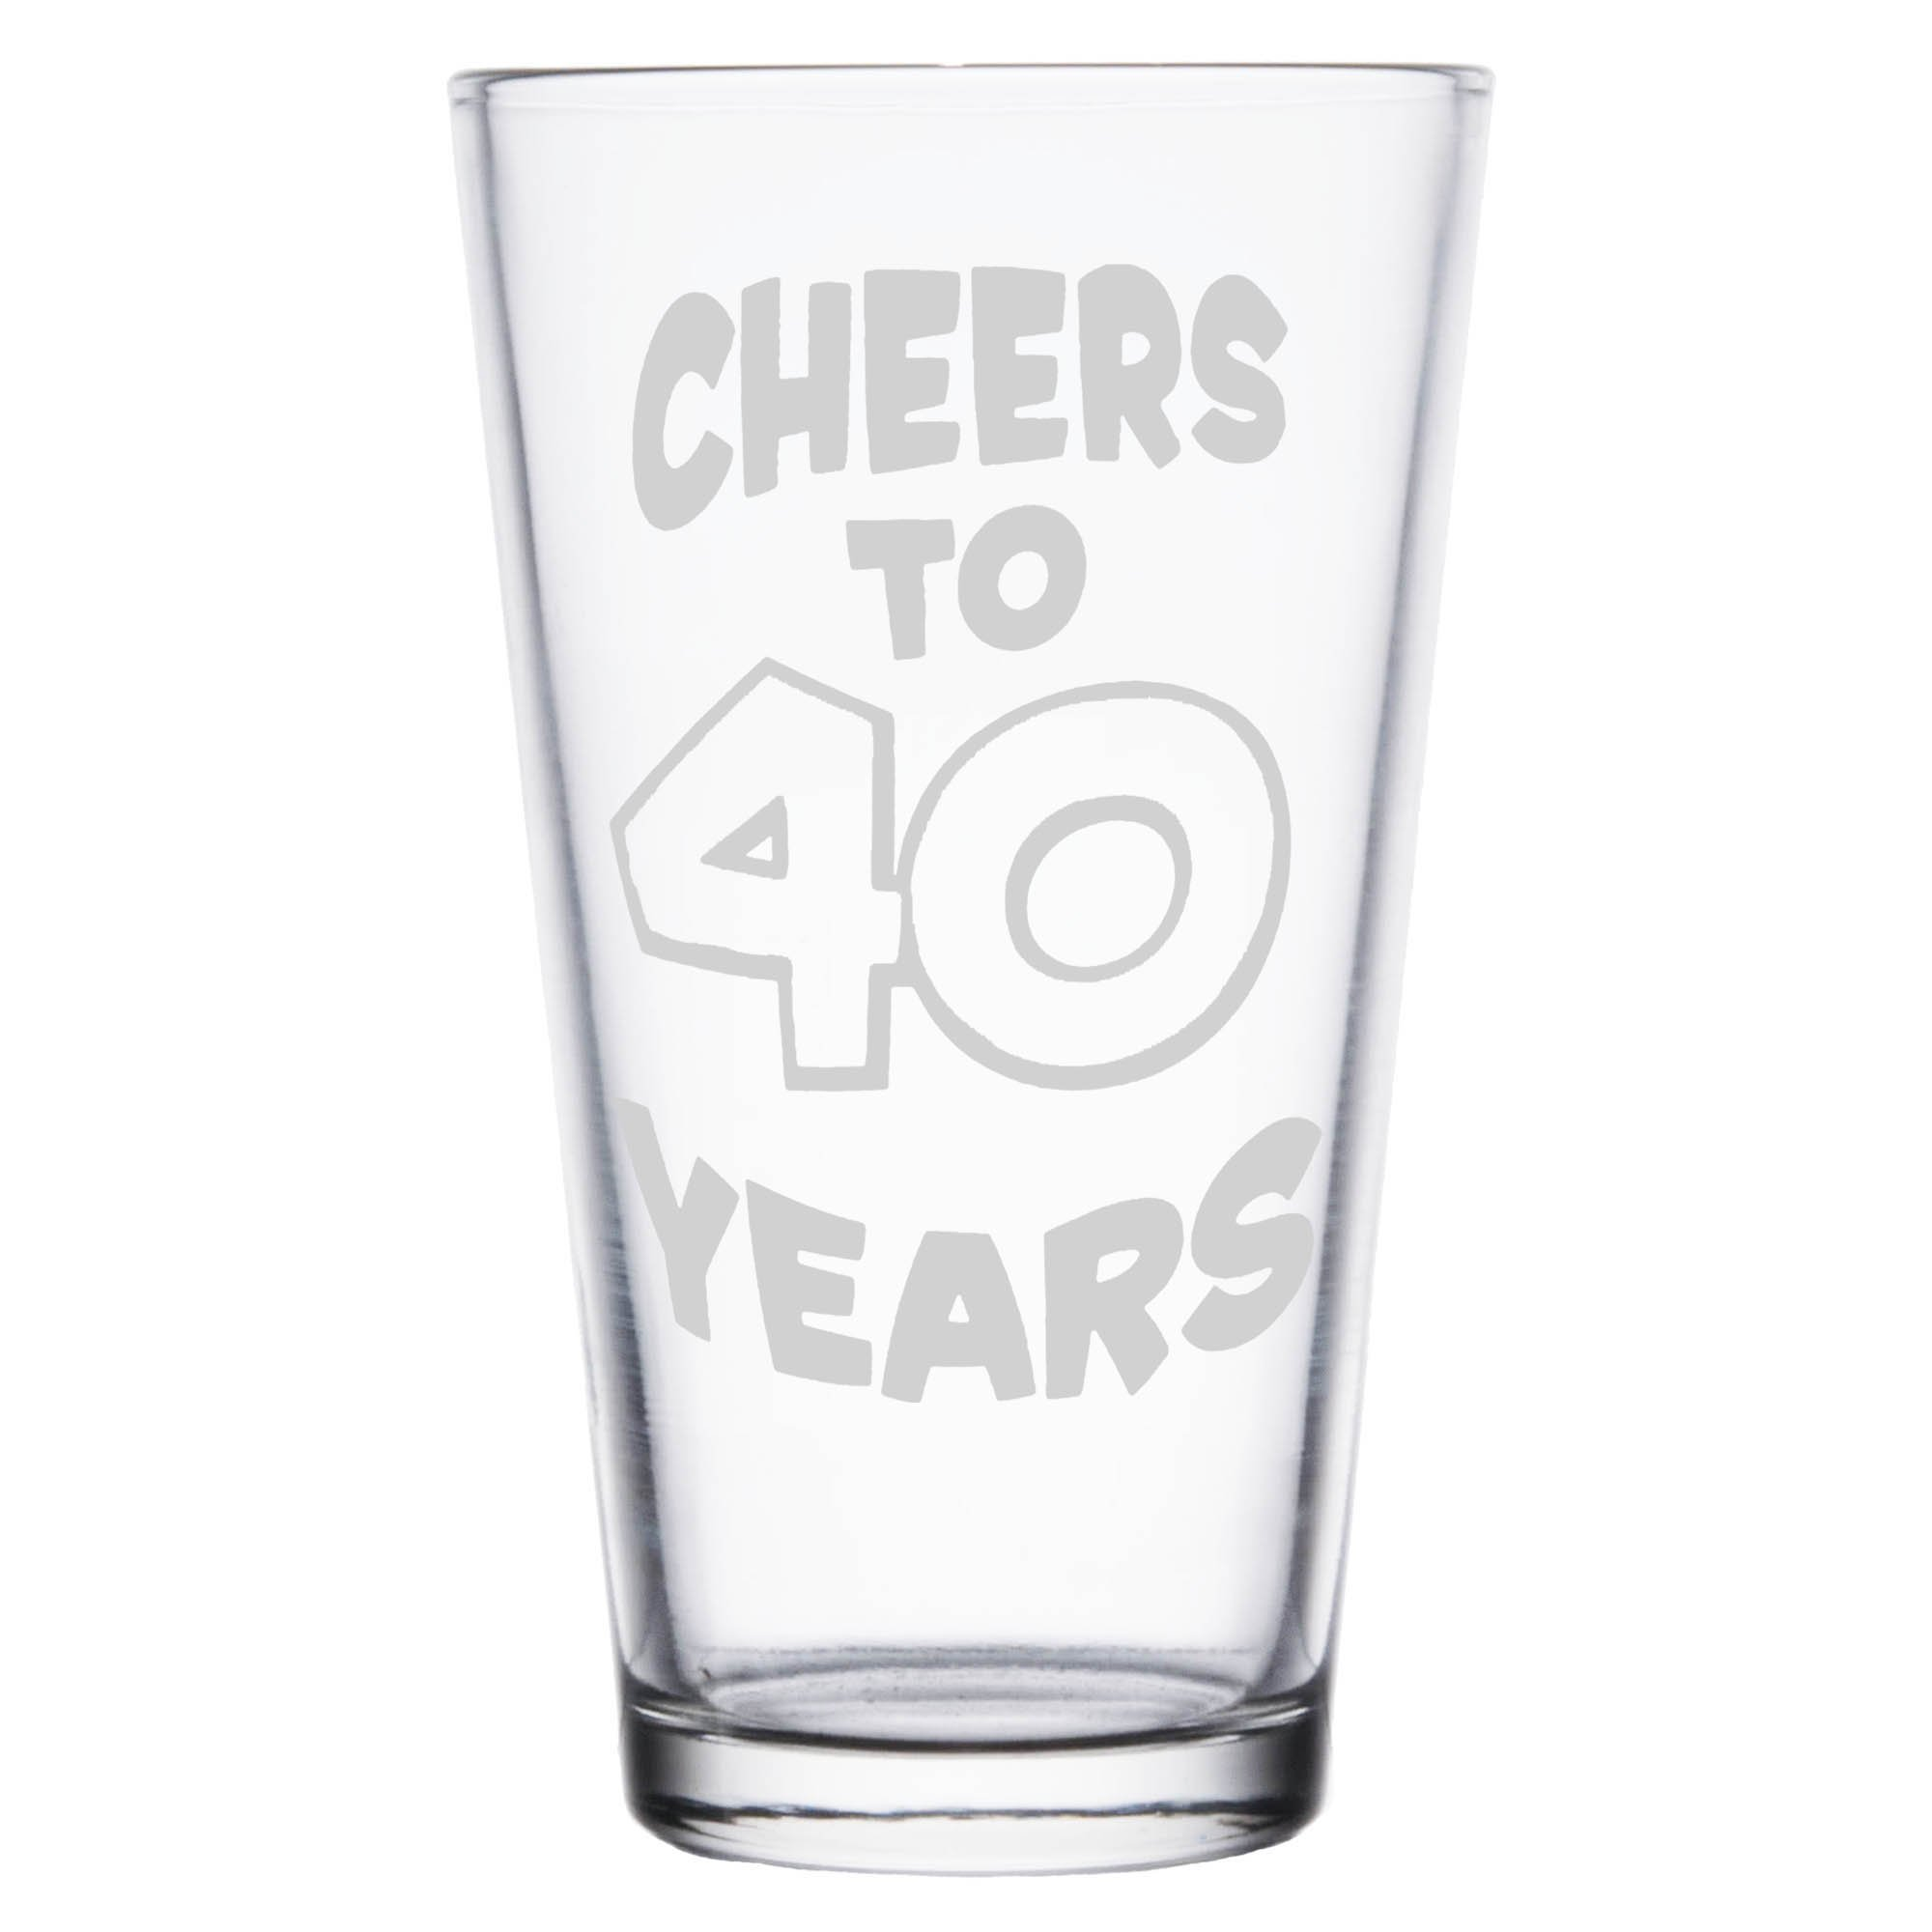 Shop4Ever Cheers To 40 Years Laser Engraved Beer Pint Glass ~ 40th Birthday Gift ~ (Clear, 16 oz.) by Shop4Ever (Image #2)